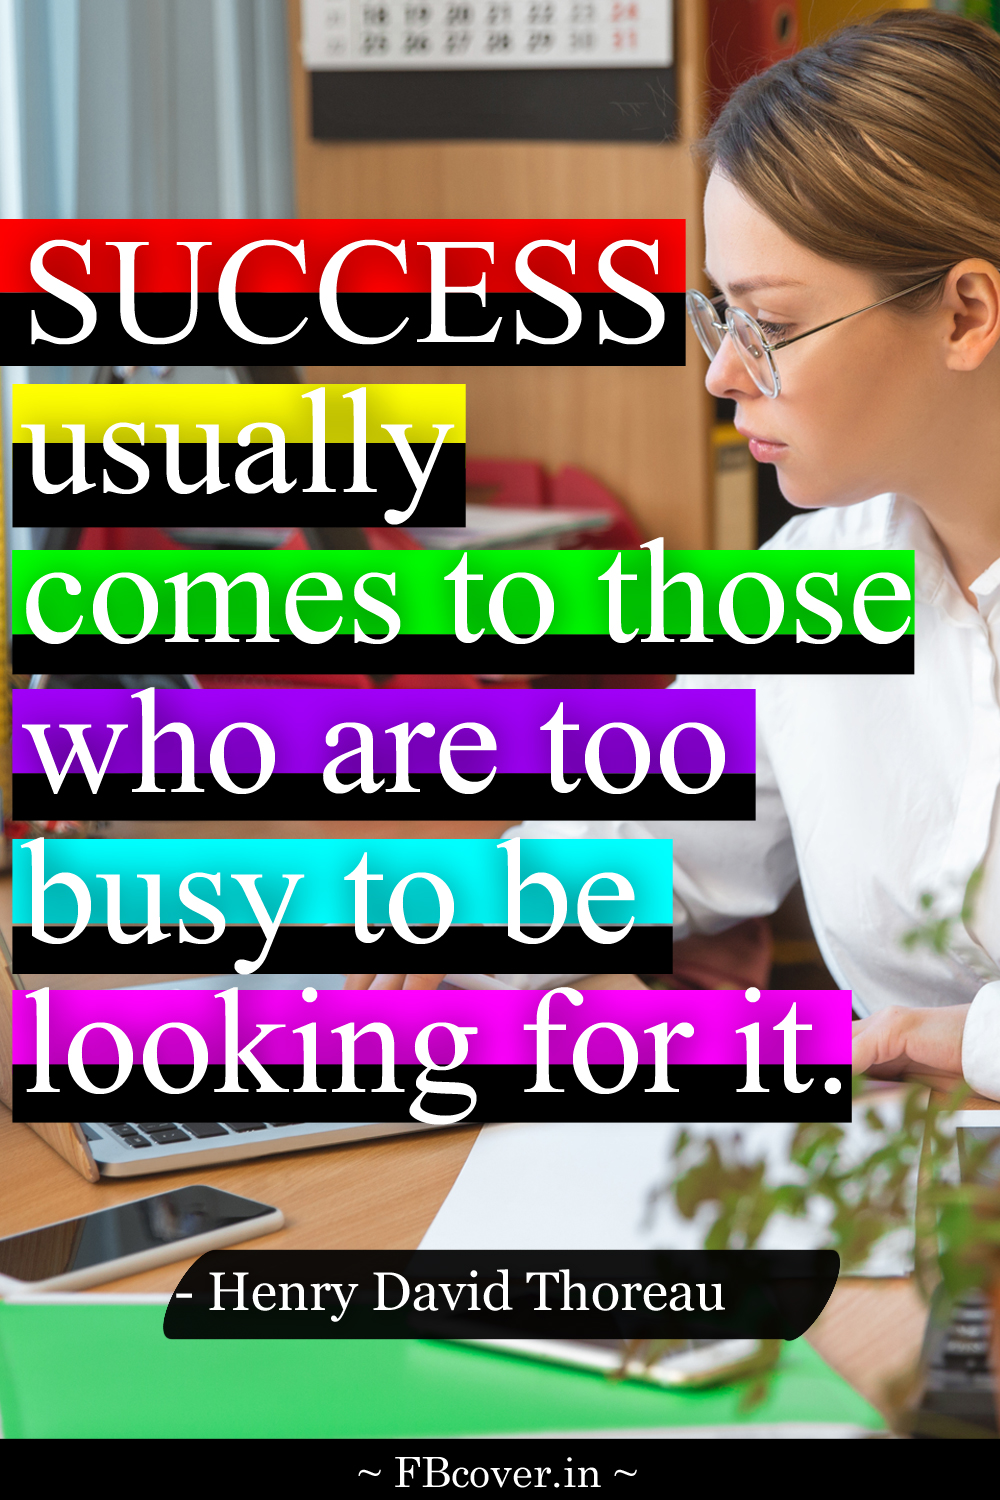 success usually comes to those, success quotes for students, henry david thoreau quotes success